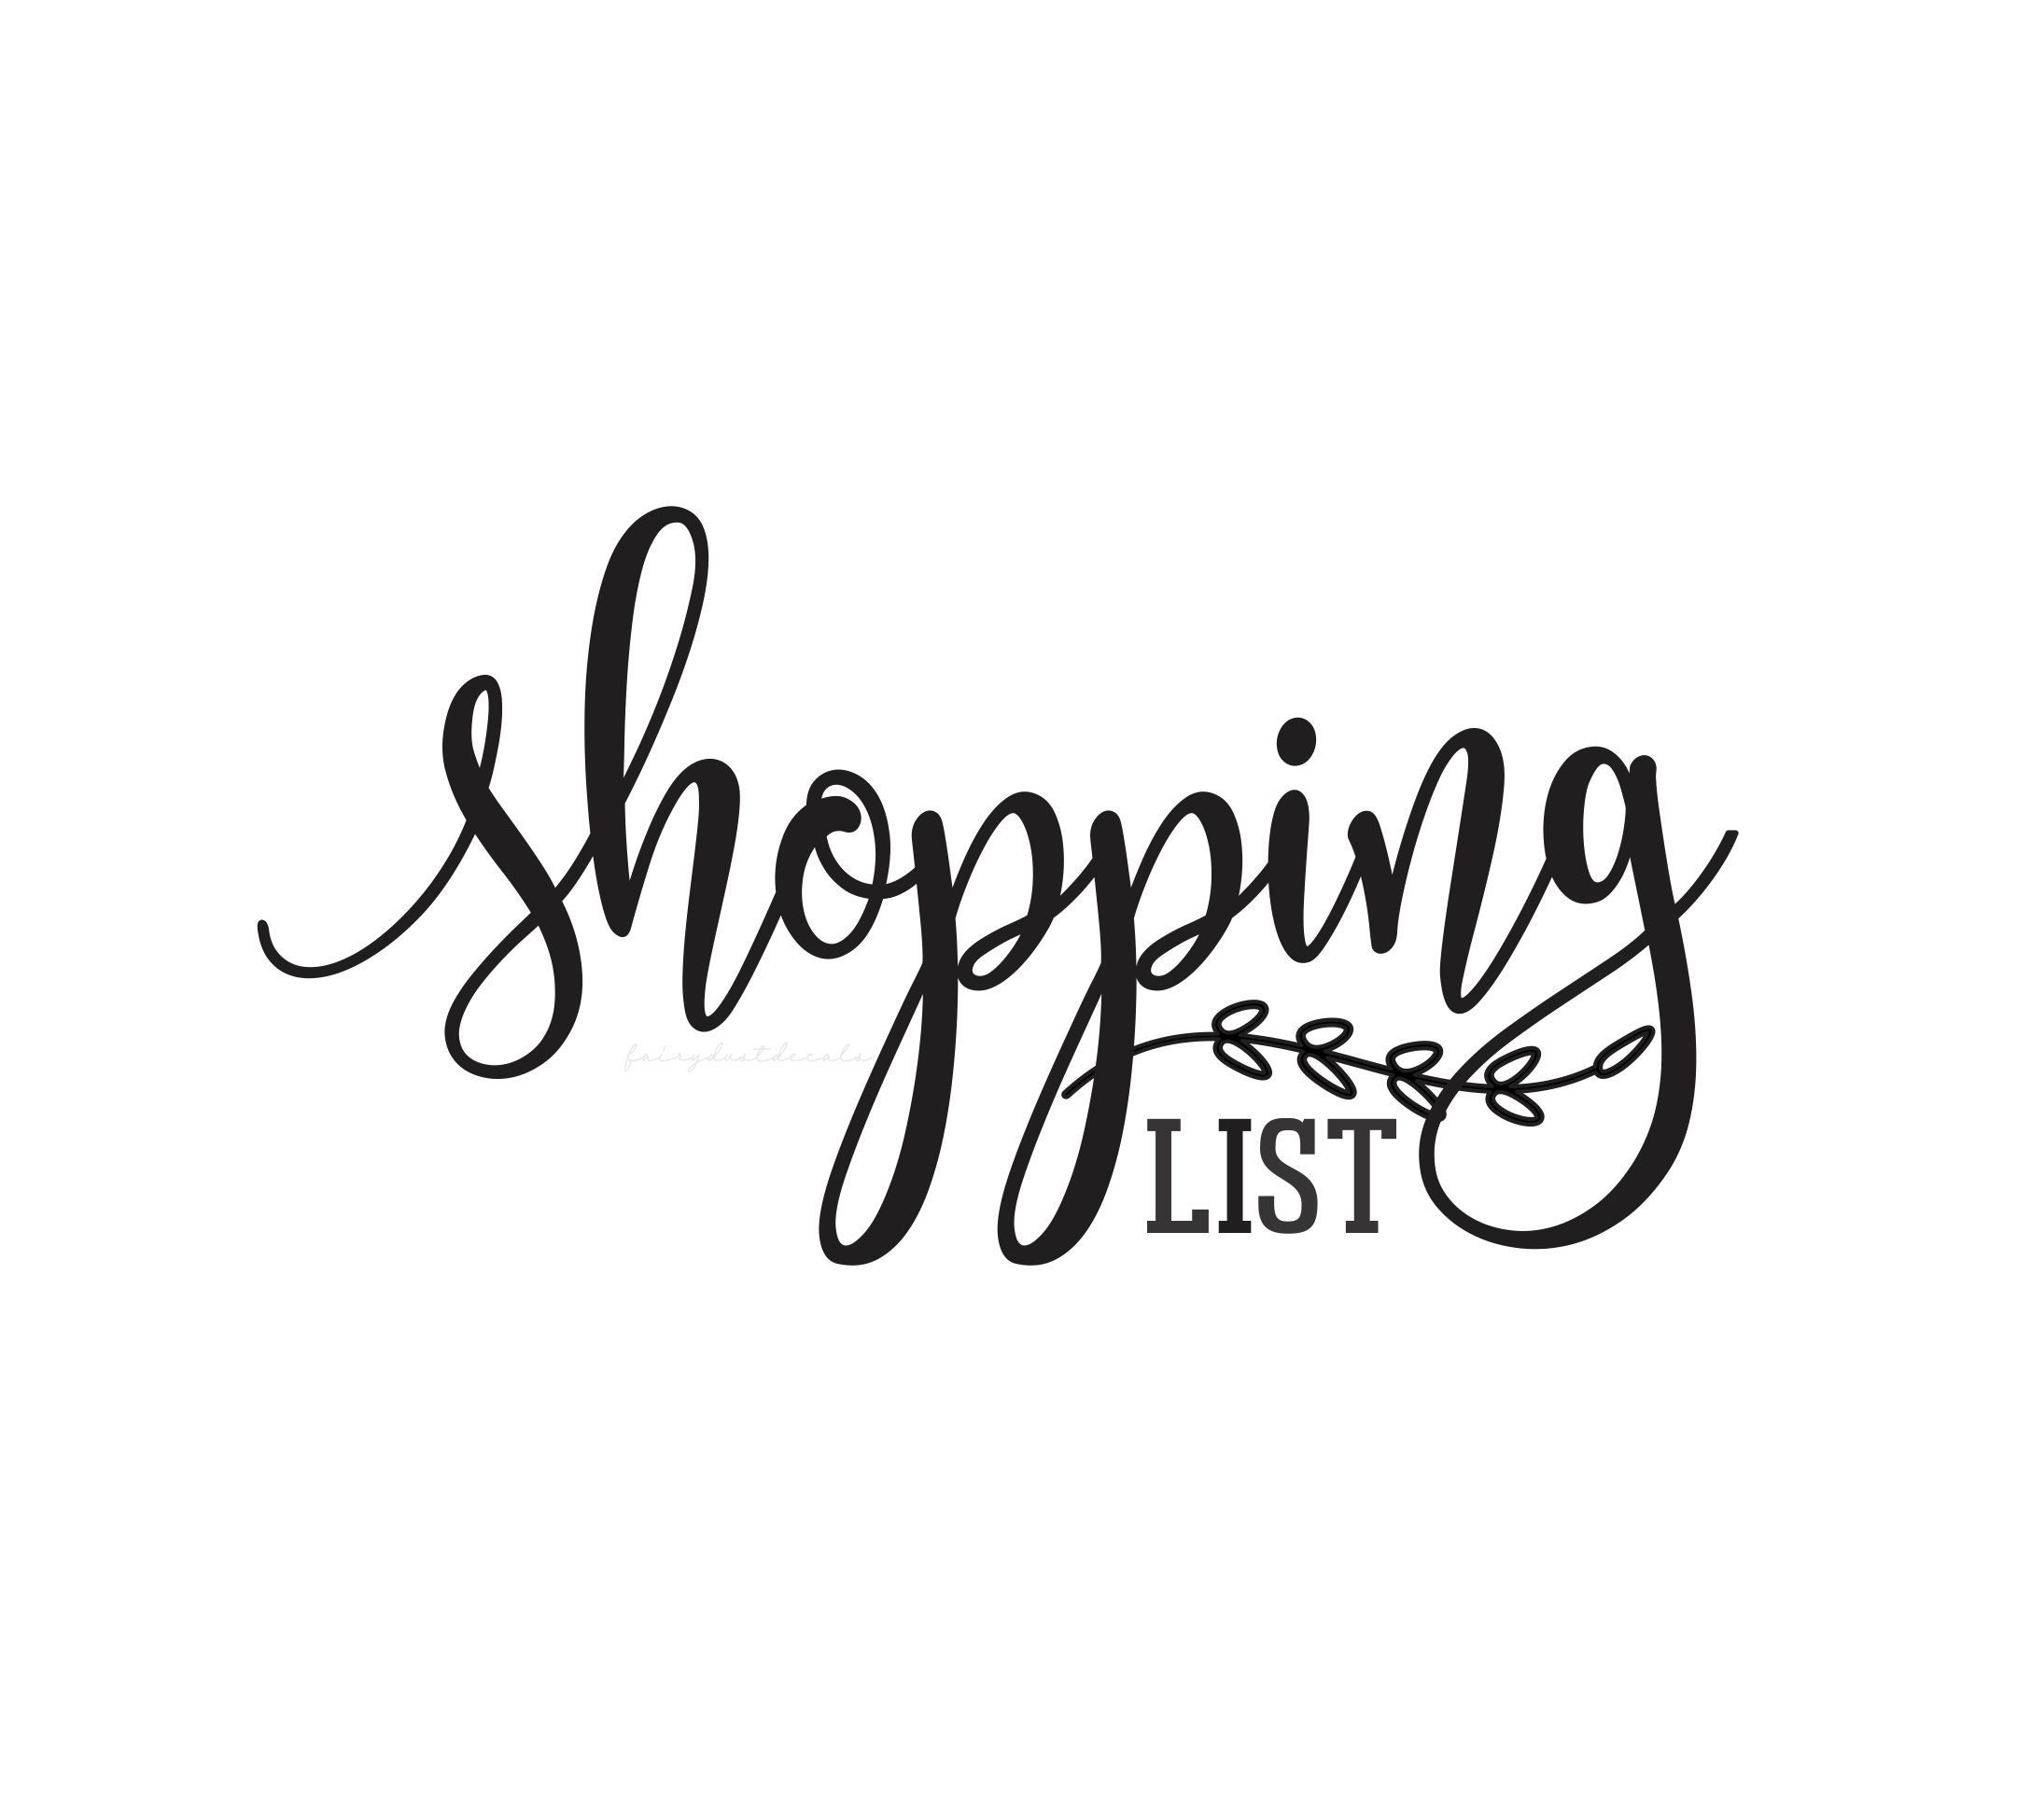 Shopping List Decal, command center organization, computer cut vinyl decal, grocery shopping sign sticker, organized kitchen and pantry